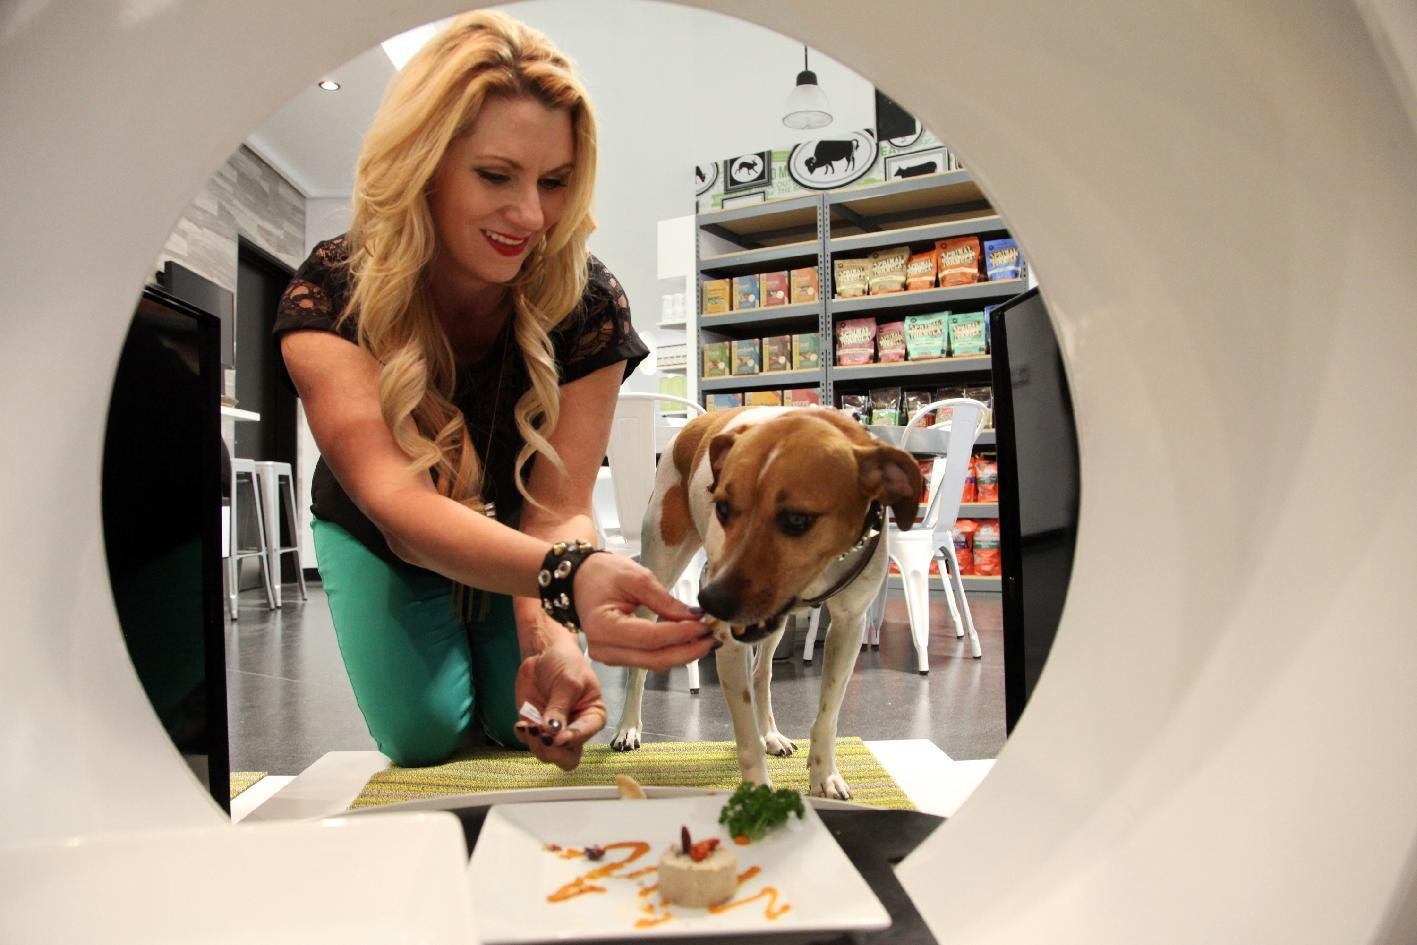 This Jan. 2, 2014, photo shows store co-owner, Janene Zakrajsek feeding a dog a gormet meal at the Pussy & Pooch Pet Lifestyle Center store in Beverly Hills, Calif. The Beverly Hills center, the newest of four locations, opened in December and markets itself as a lifestyle hub, complete with a holistic vet and wellness spa, animal trainer, grooming salon, bakery and meat market, training lab, social club, retail outlets and showroom. (AP Photo/Nick Ut)